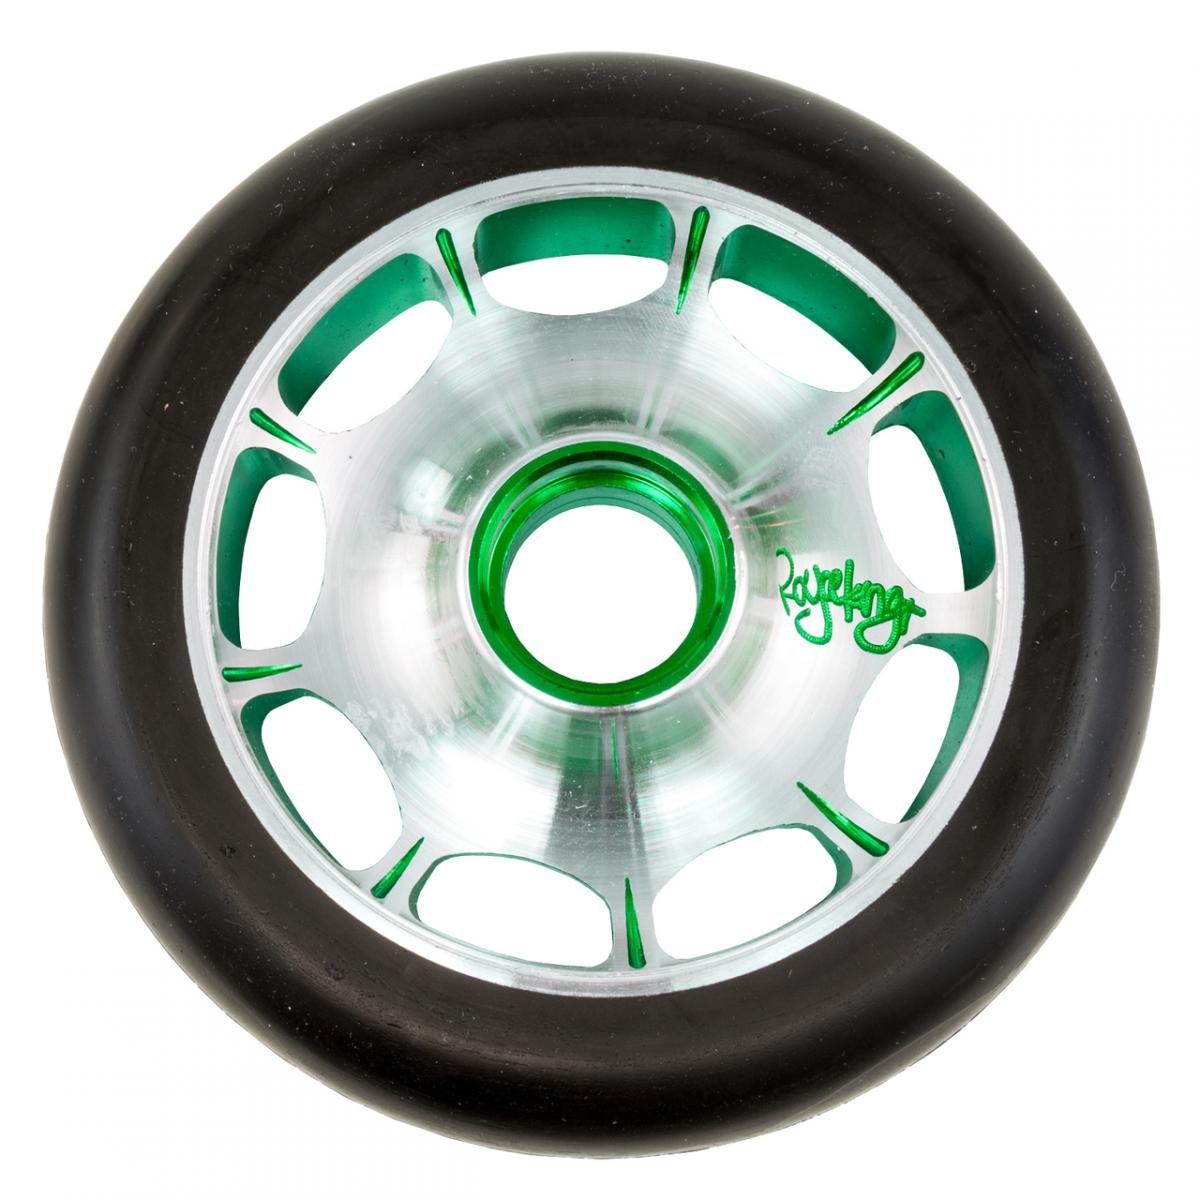 Root Industries Futuro 33 'Royce King' Wheels - 110mm